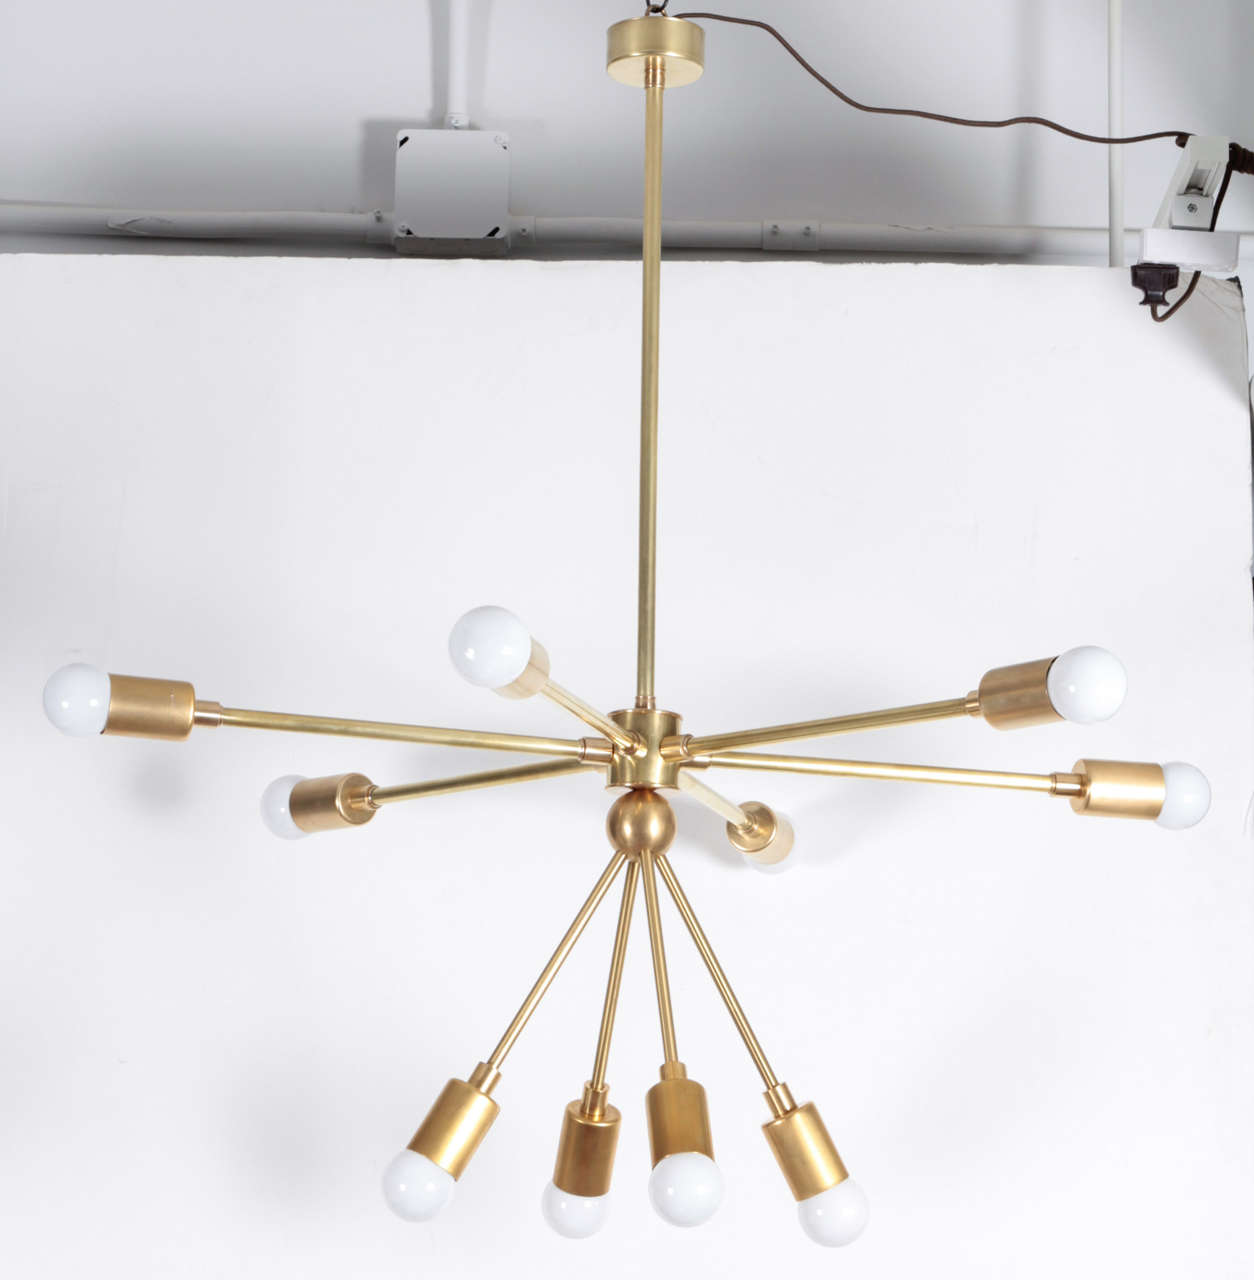 The Macomber Sputnik-style light fixture. USA, new production. Features six horizontal arms and four downward arms. Polished brass. This is a custom item; available ready made in dimensions provided below or as a custom piece with 2 to 4 week